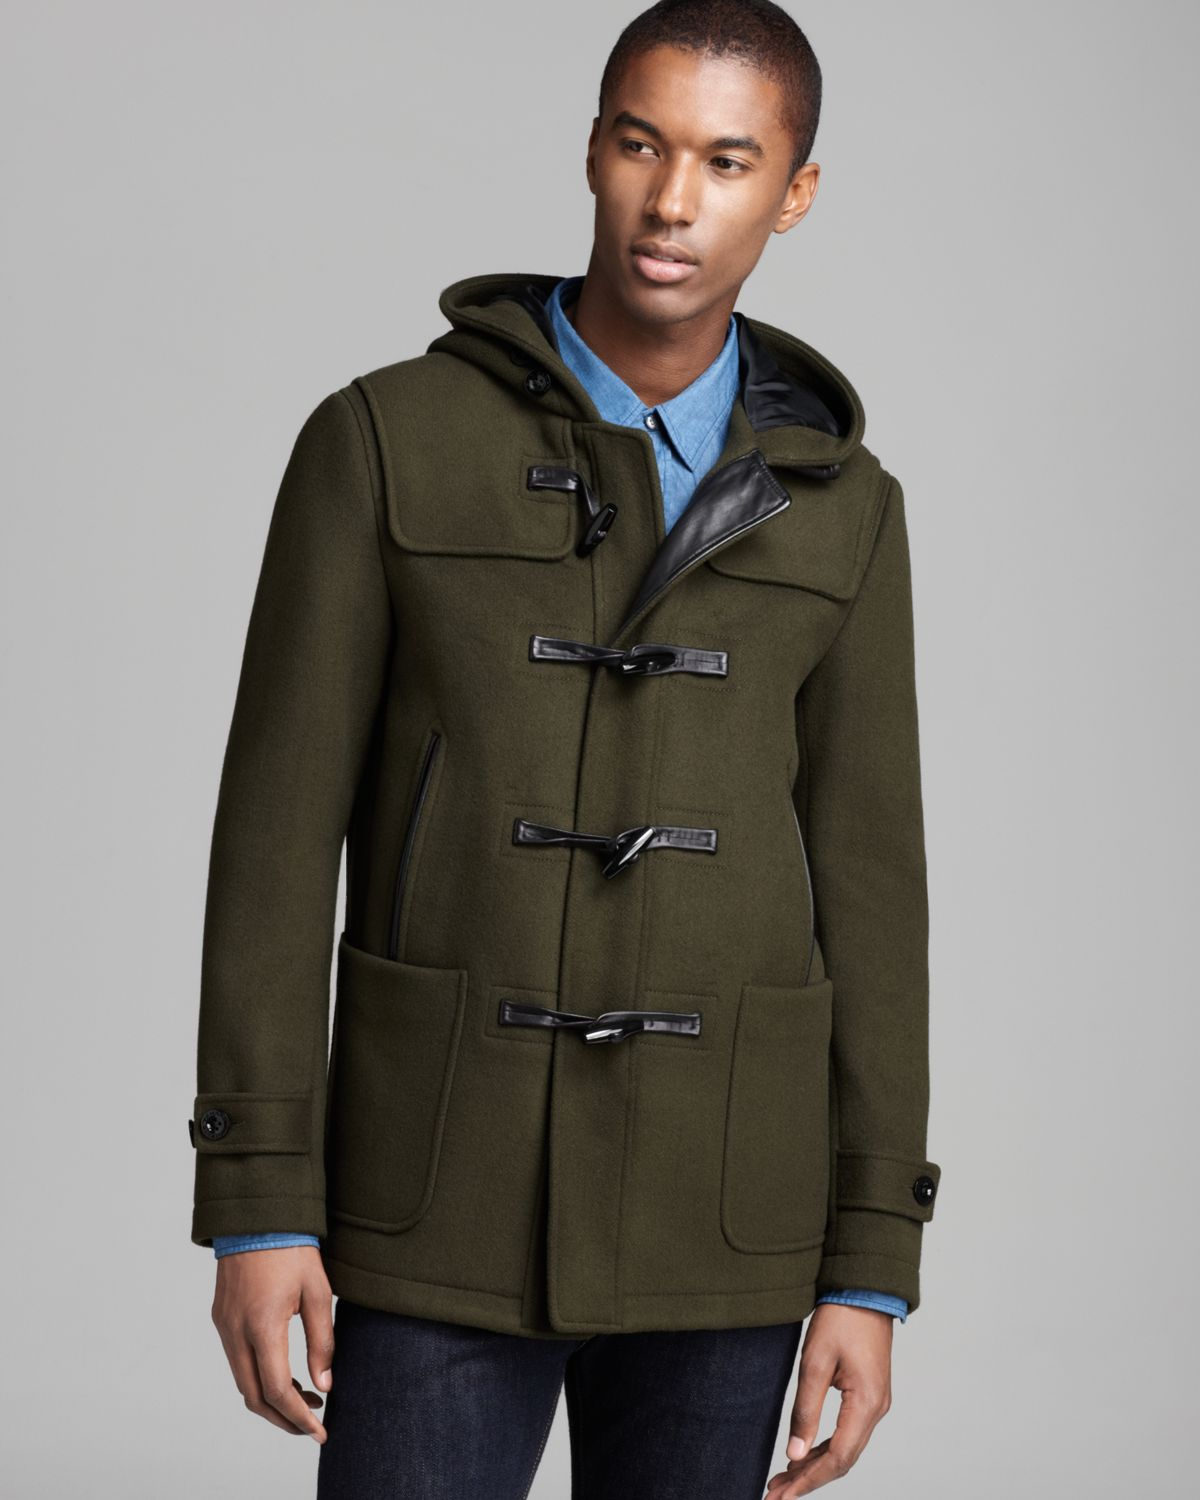 Elie tahari Nicolas Wool Toggle Coat in Green for Men | Lyst